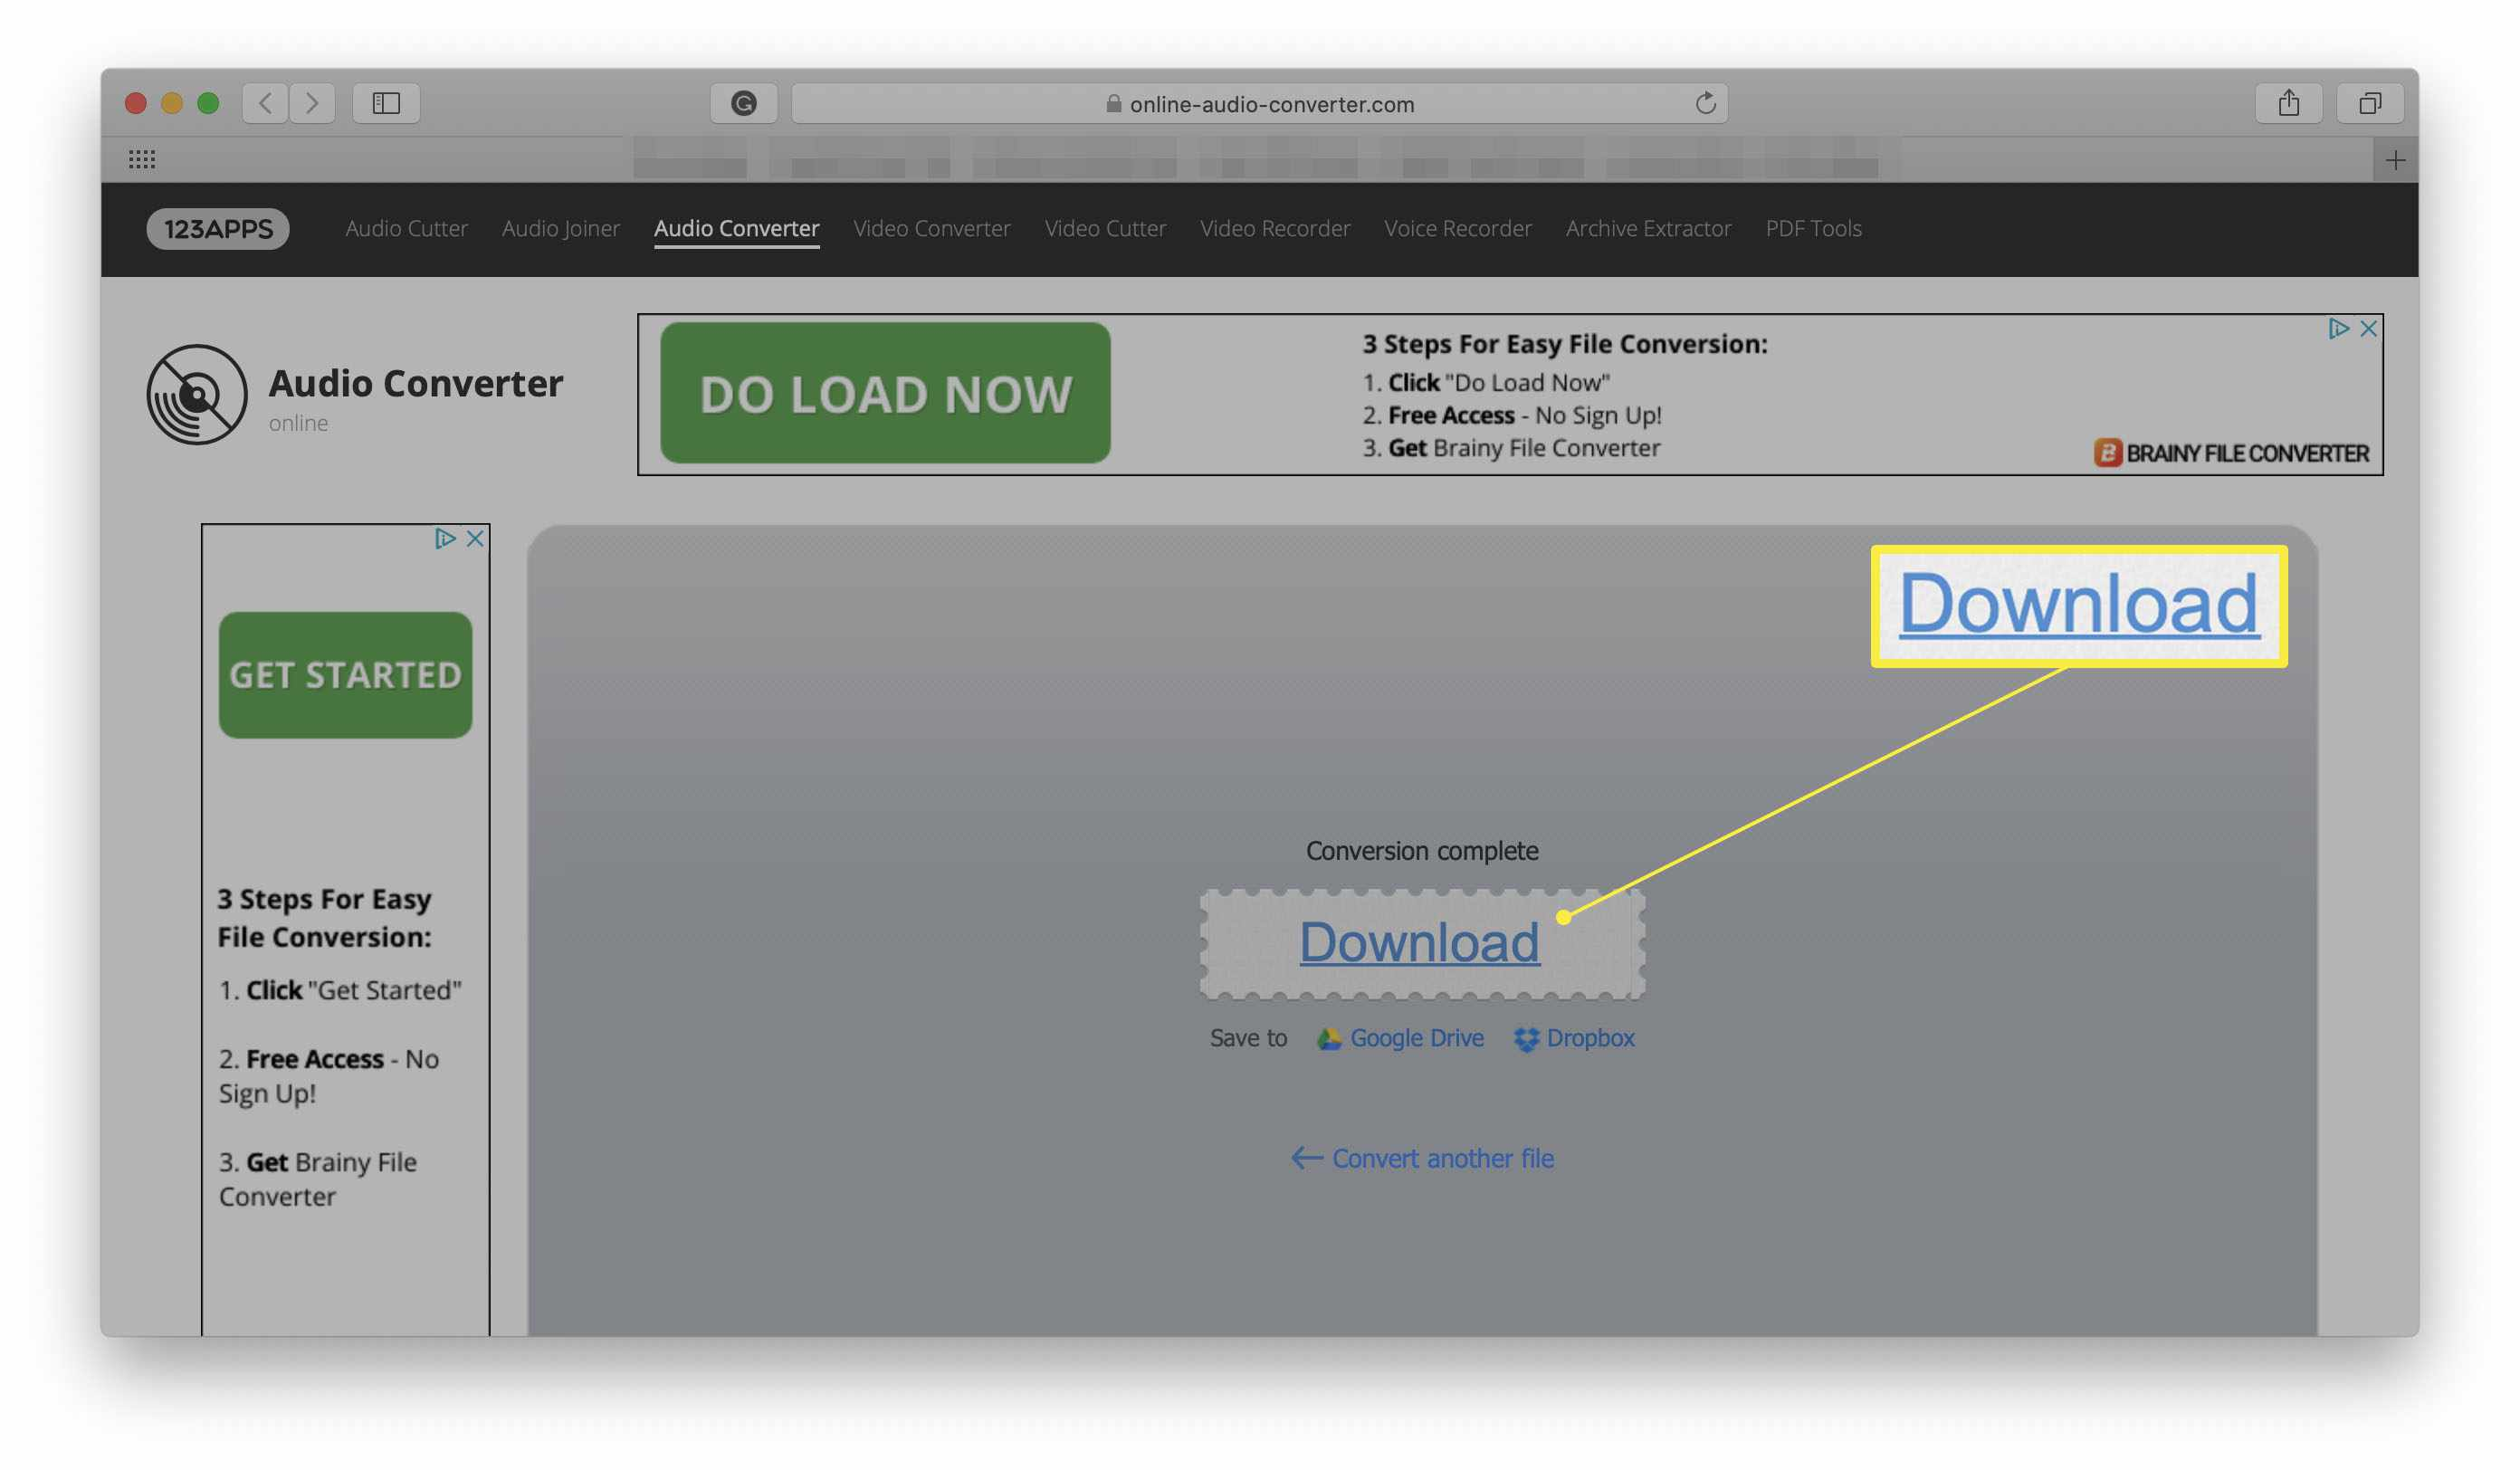 Online Audio Converter website with Download prompt for completed converted file